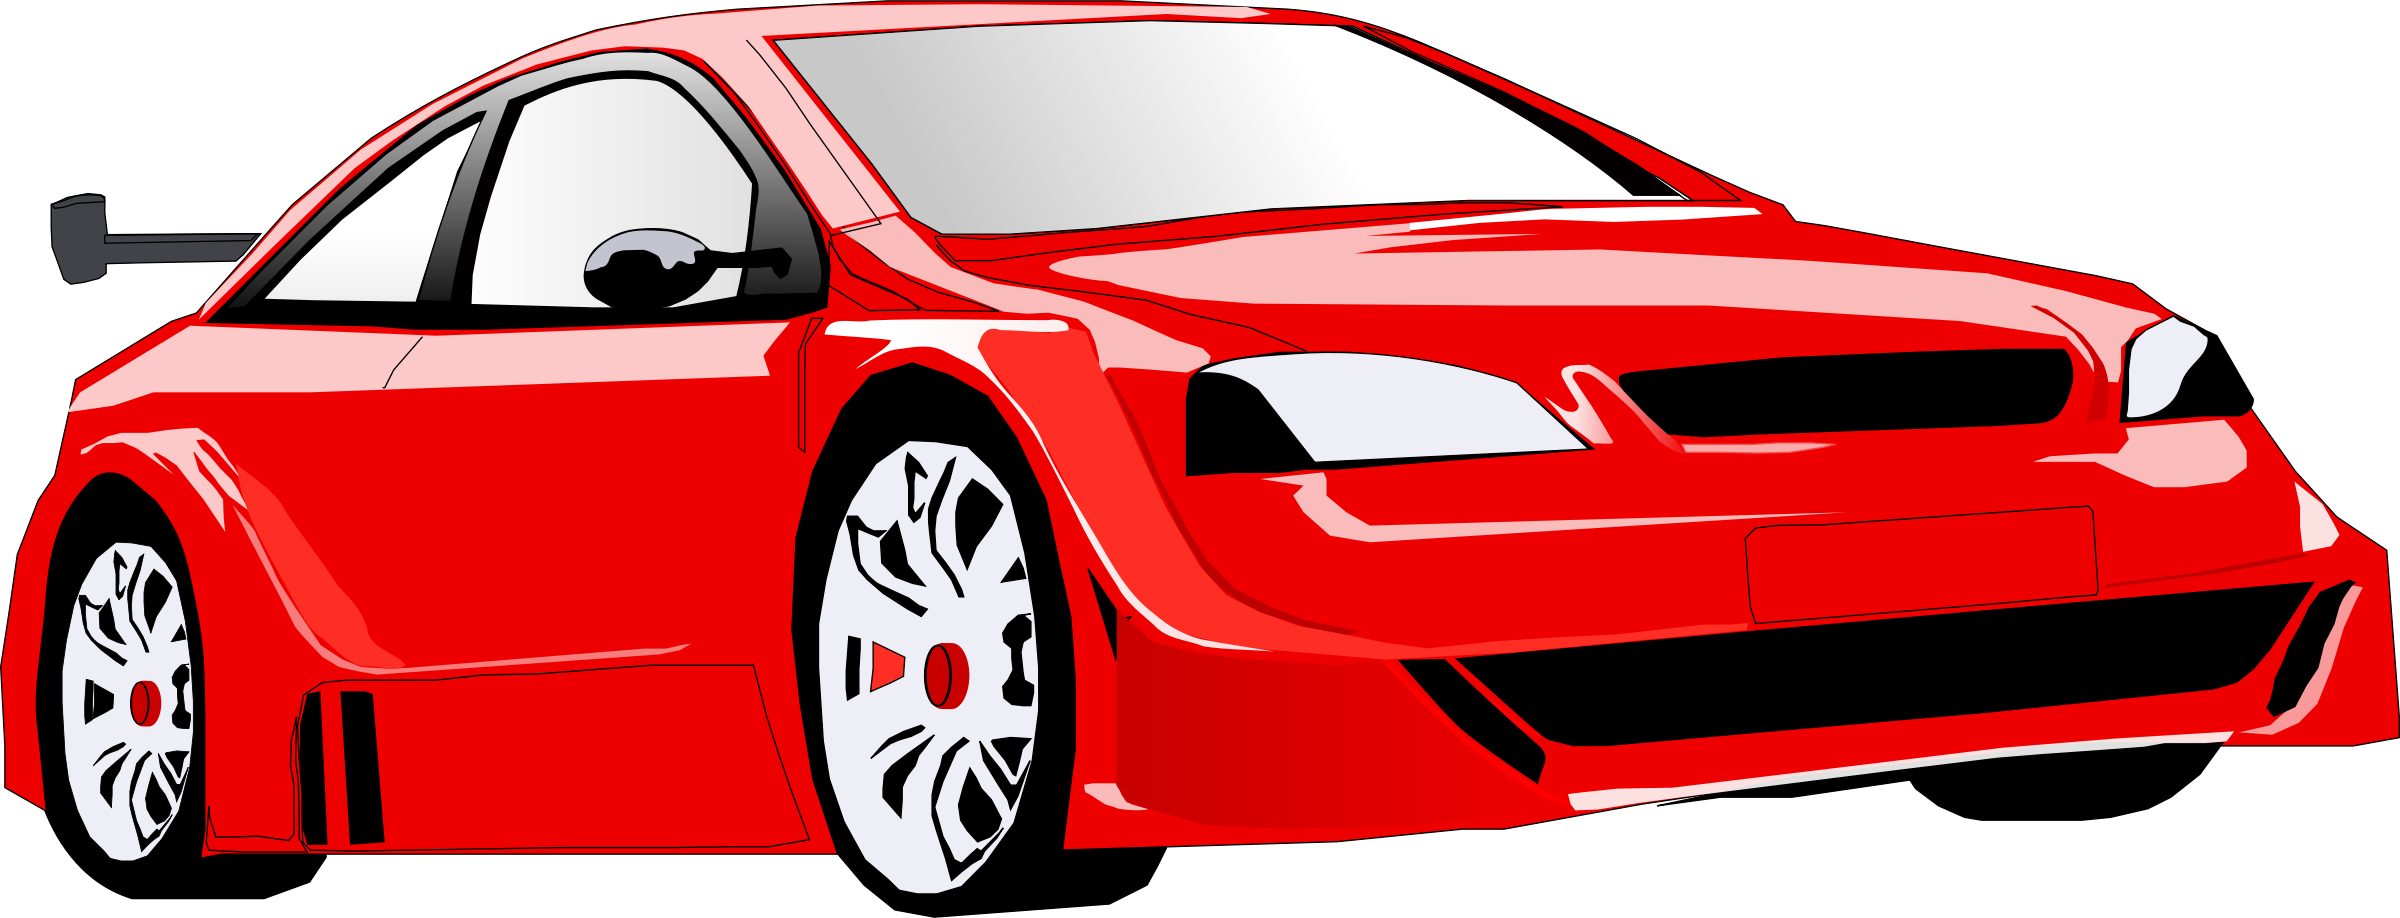 red car clipart 4 clipart station rh clipartstation com red sports car clipart cute red car clipart